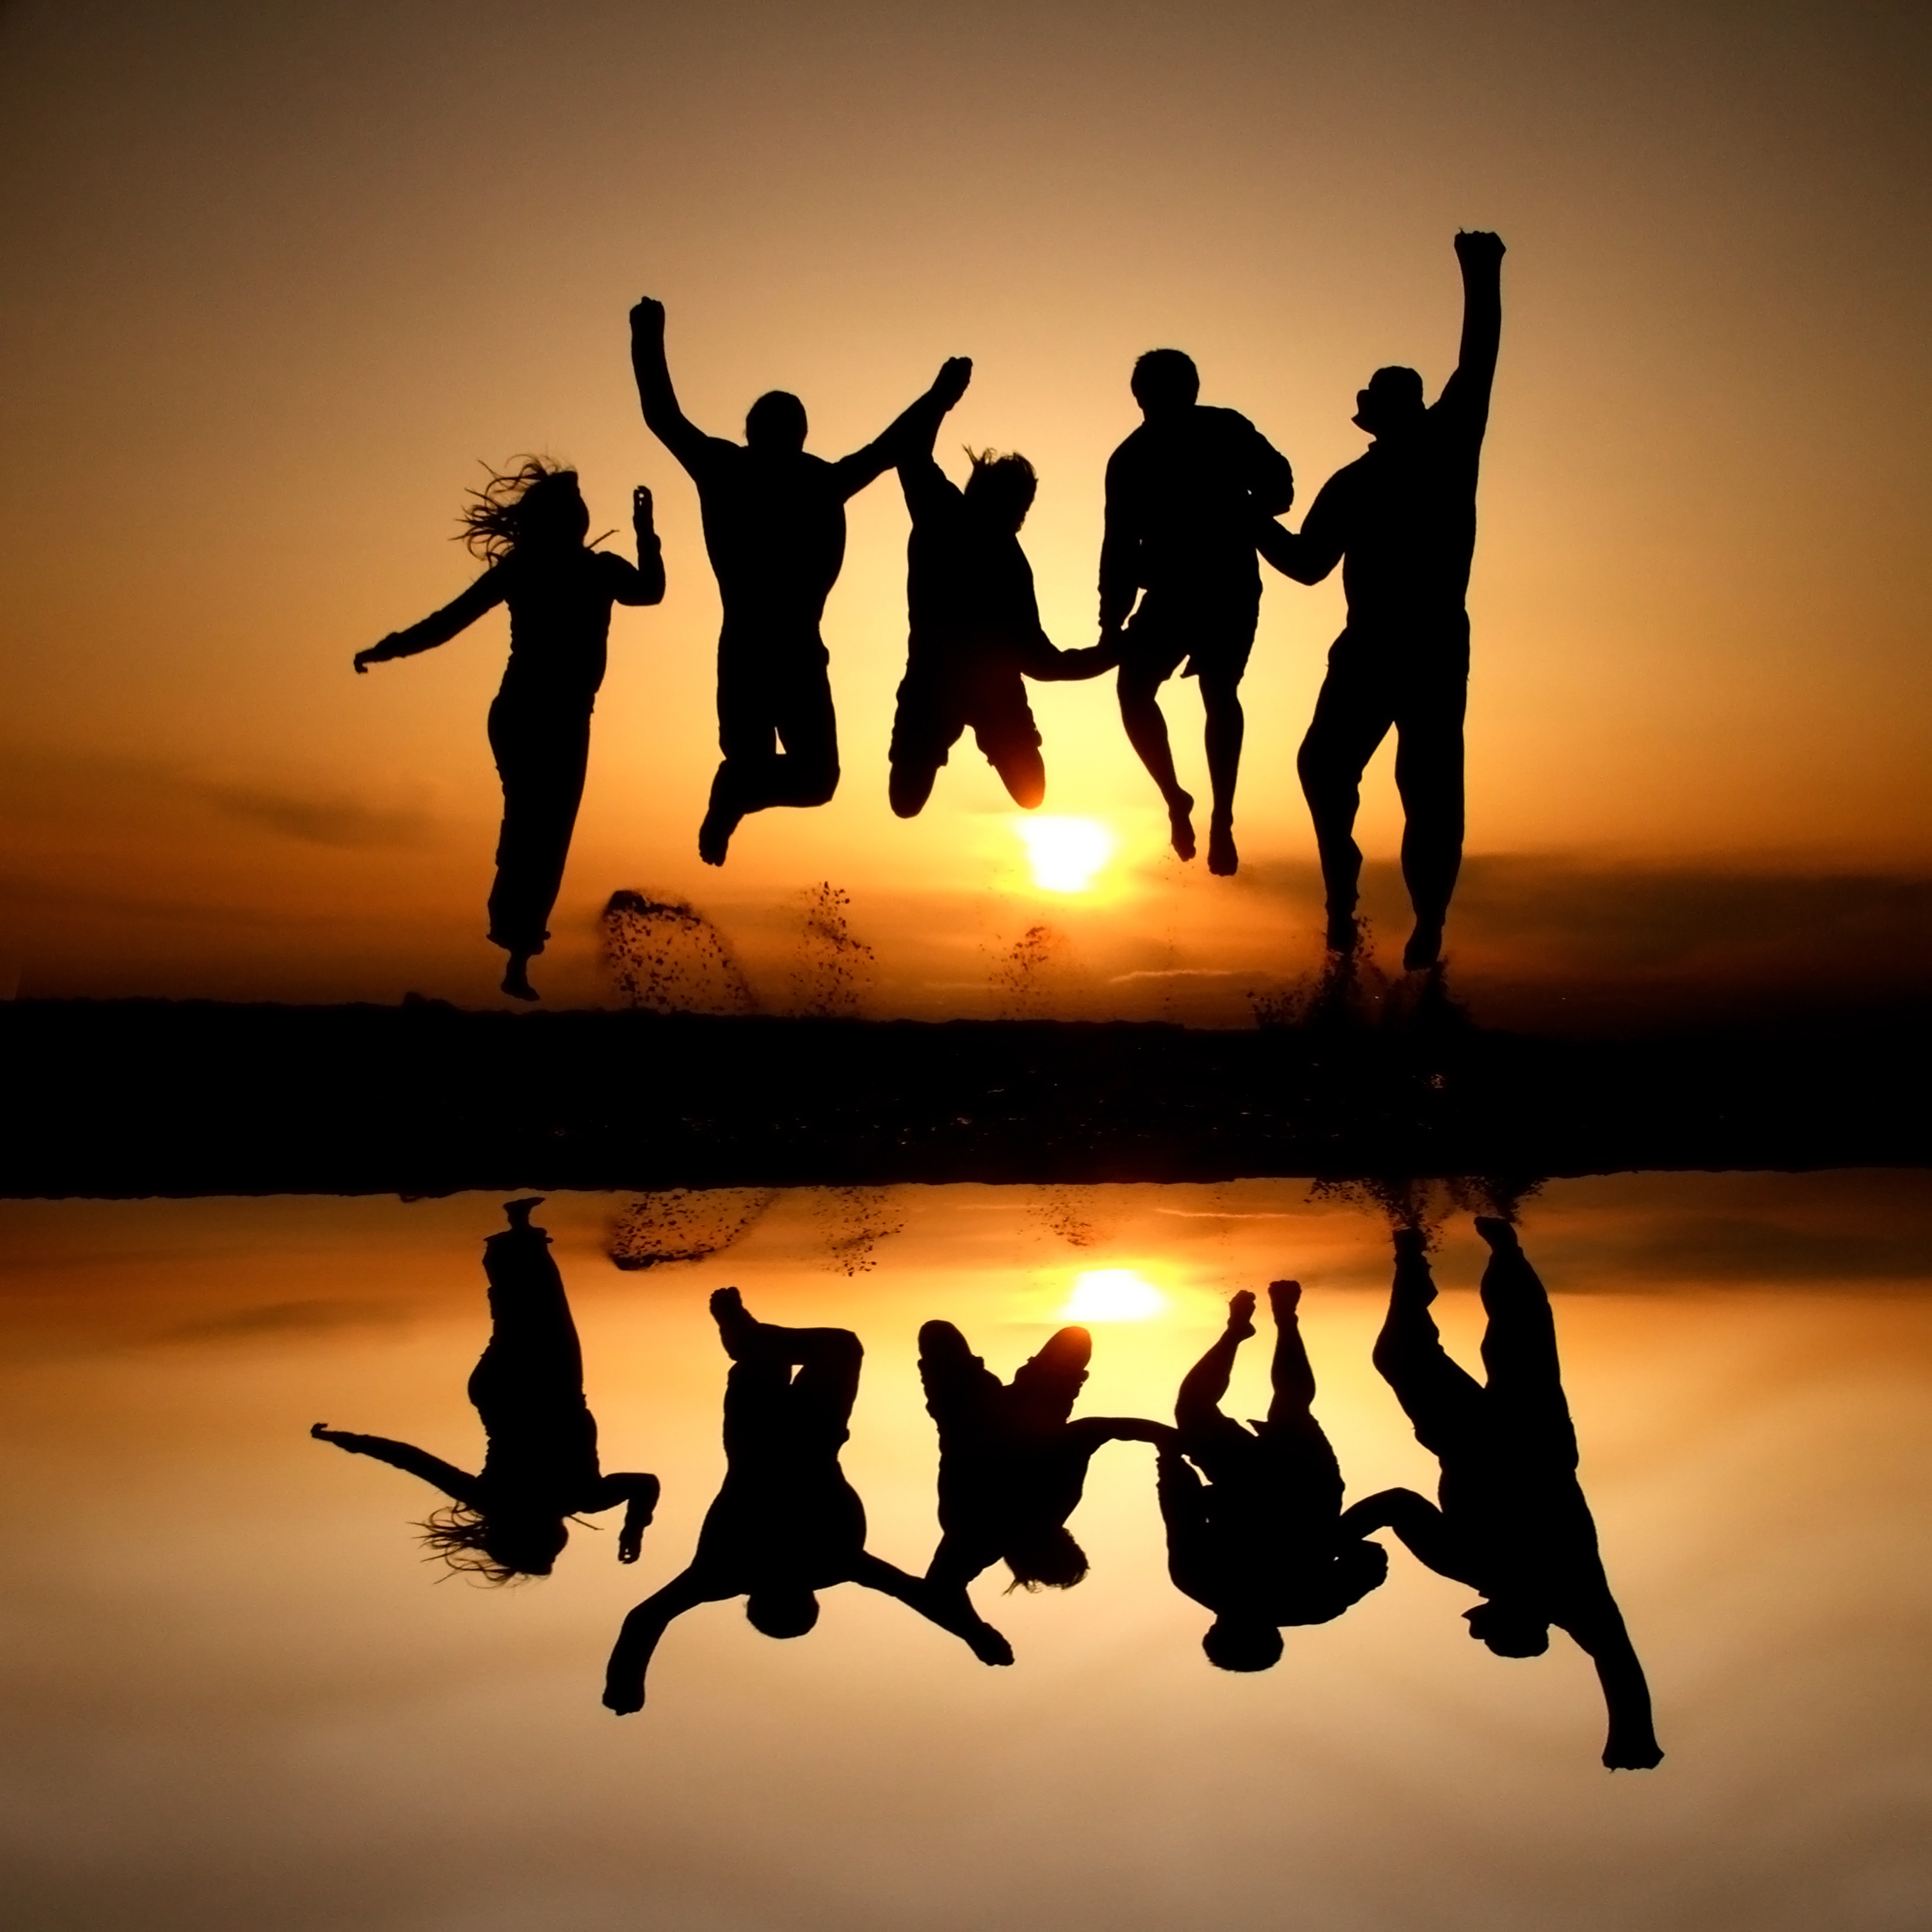 Silhoutte of group of people jumping